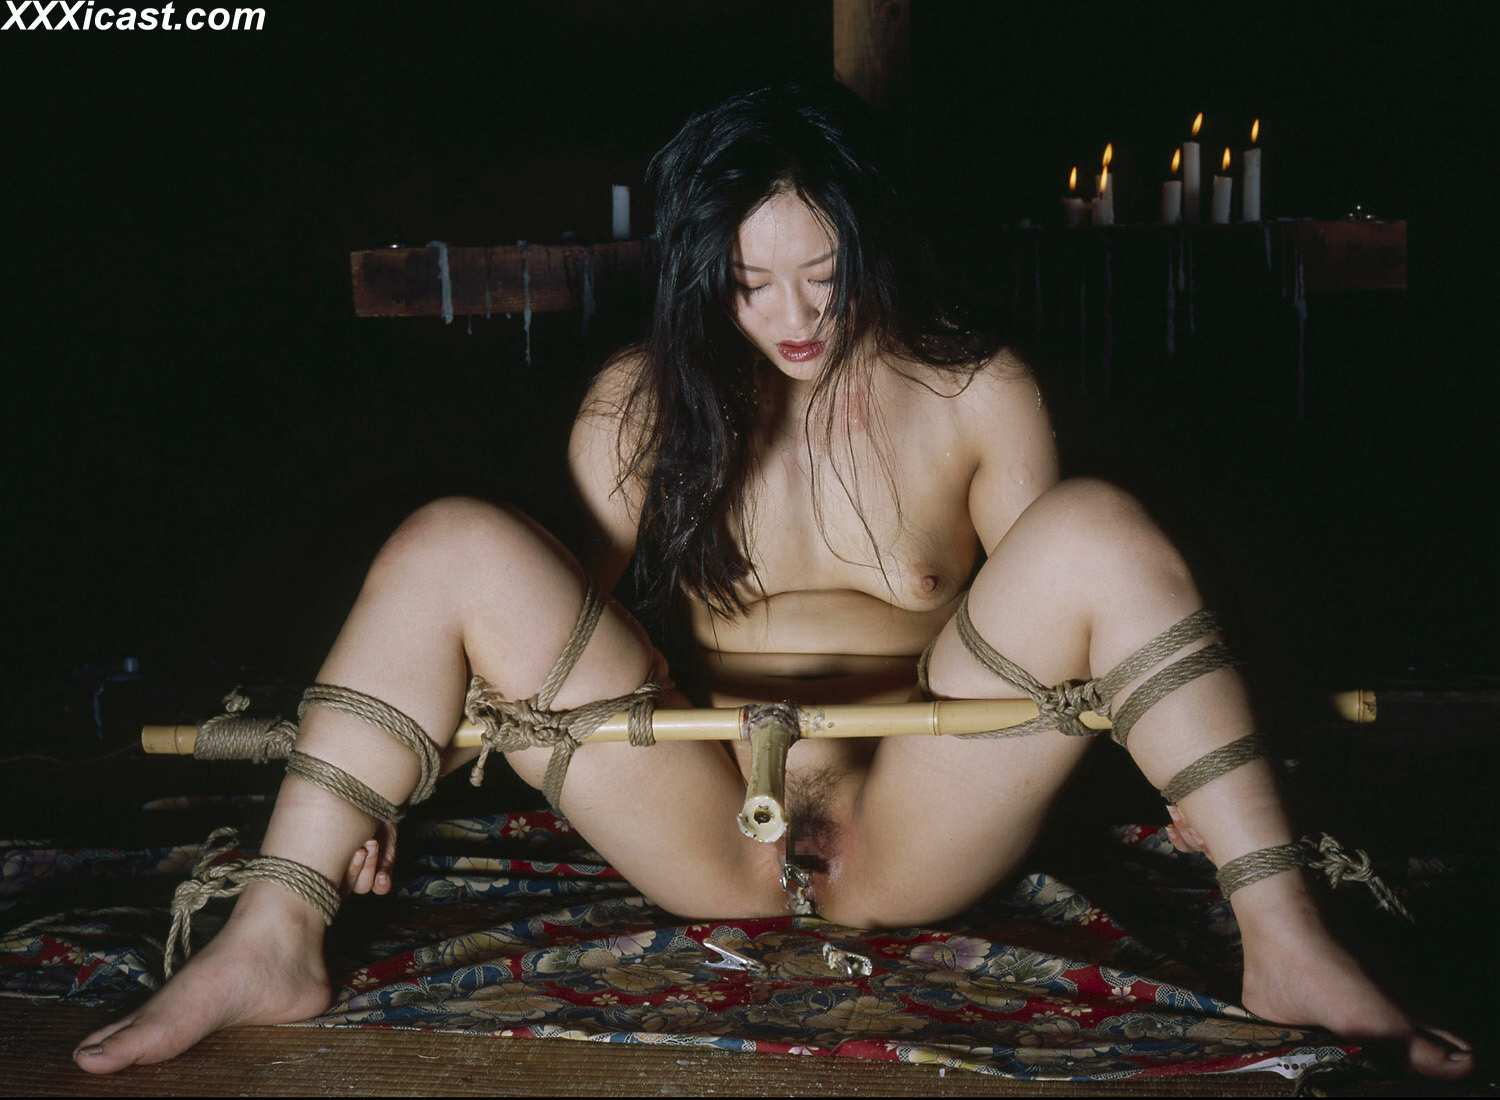 The video of bondage